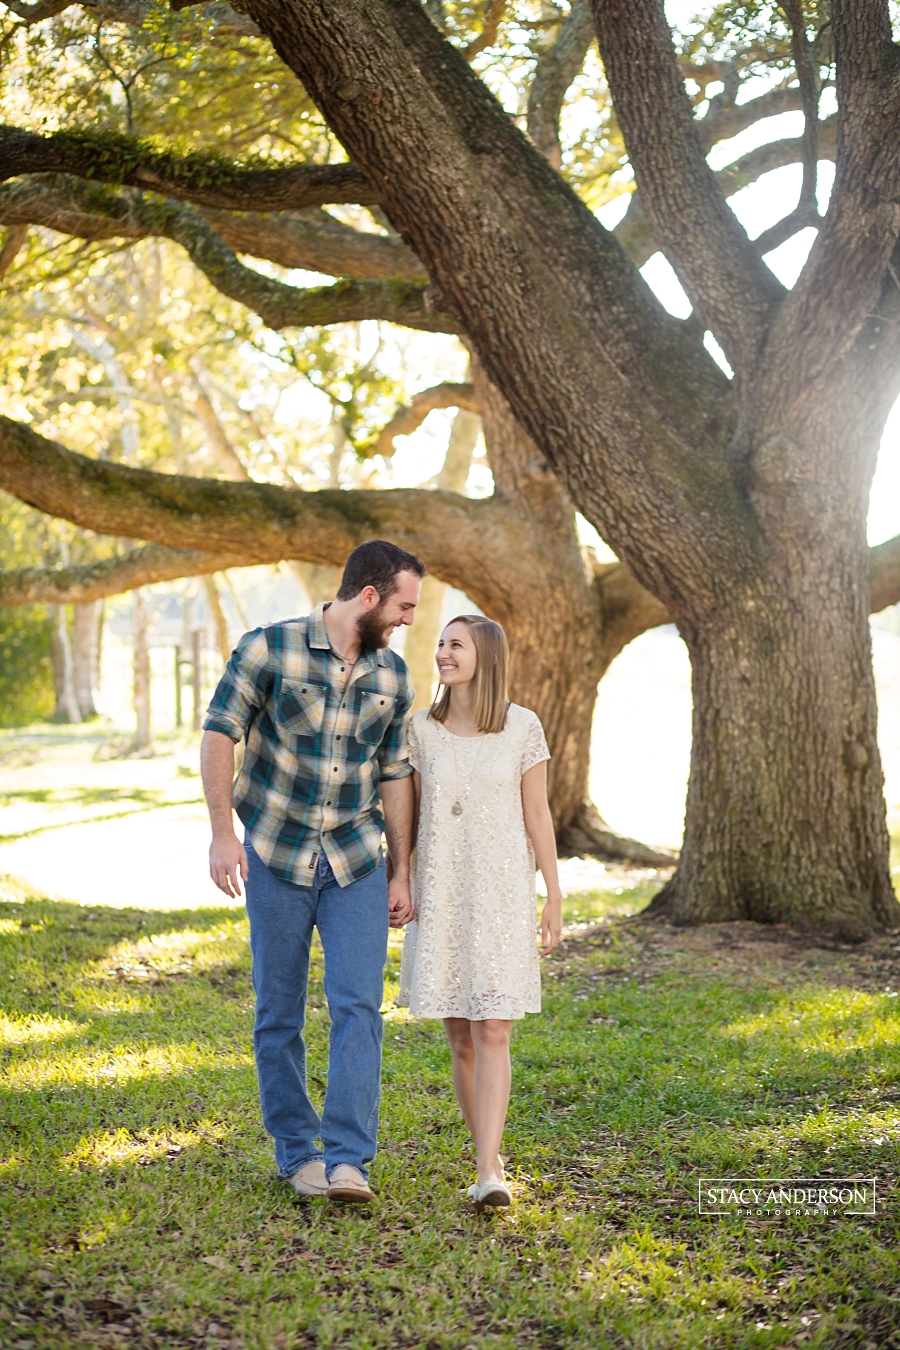 stacy-anderson-photography-alvin-wedding-photographer_0008